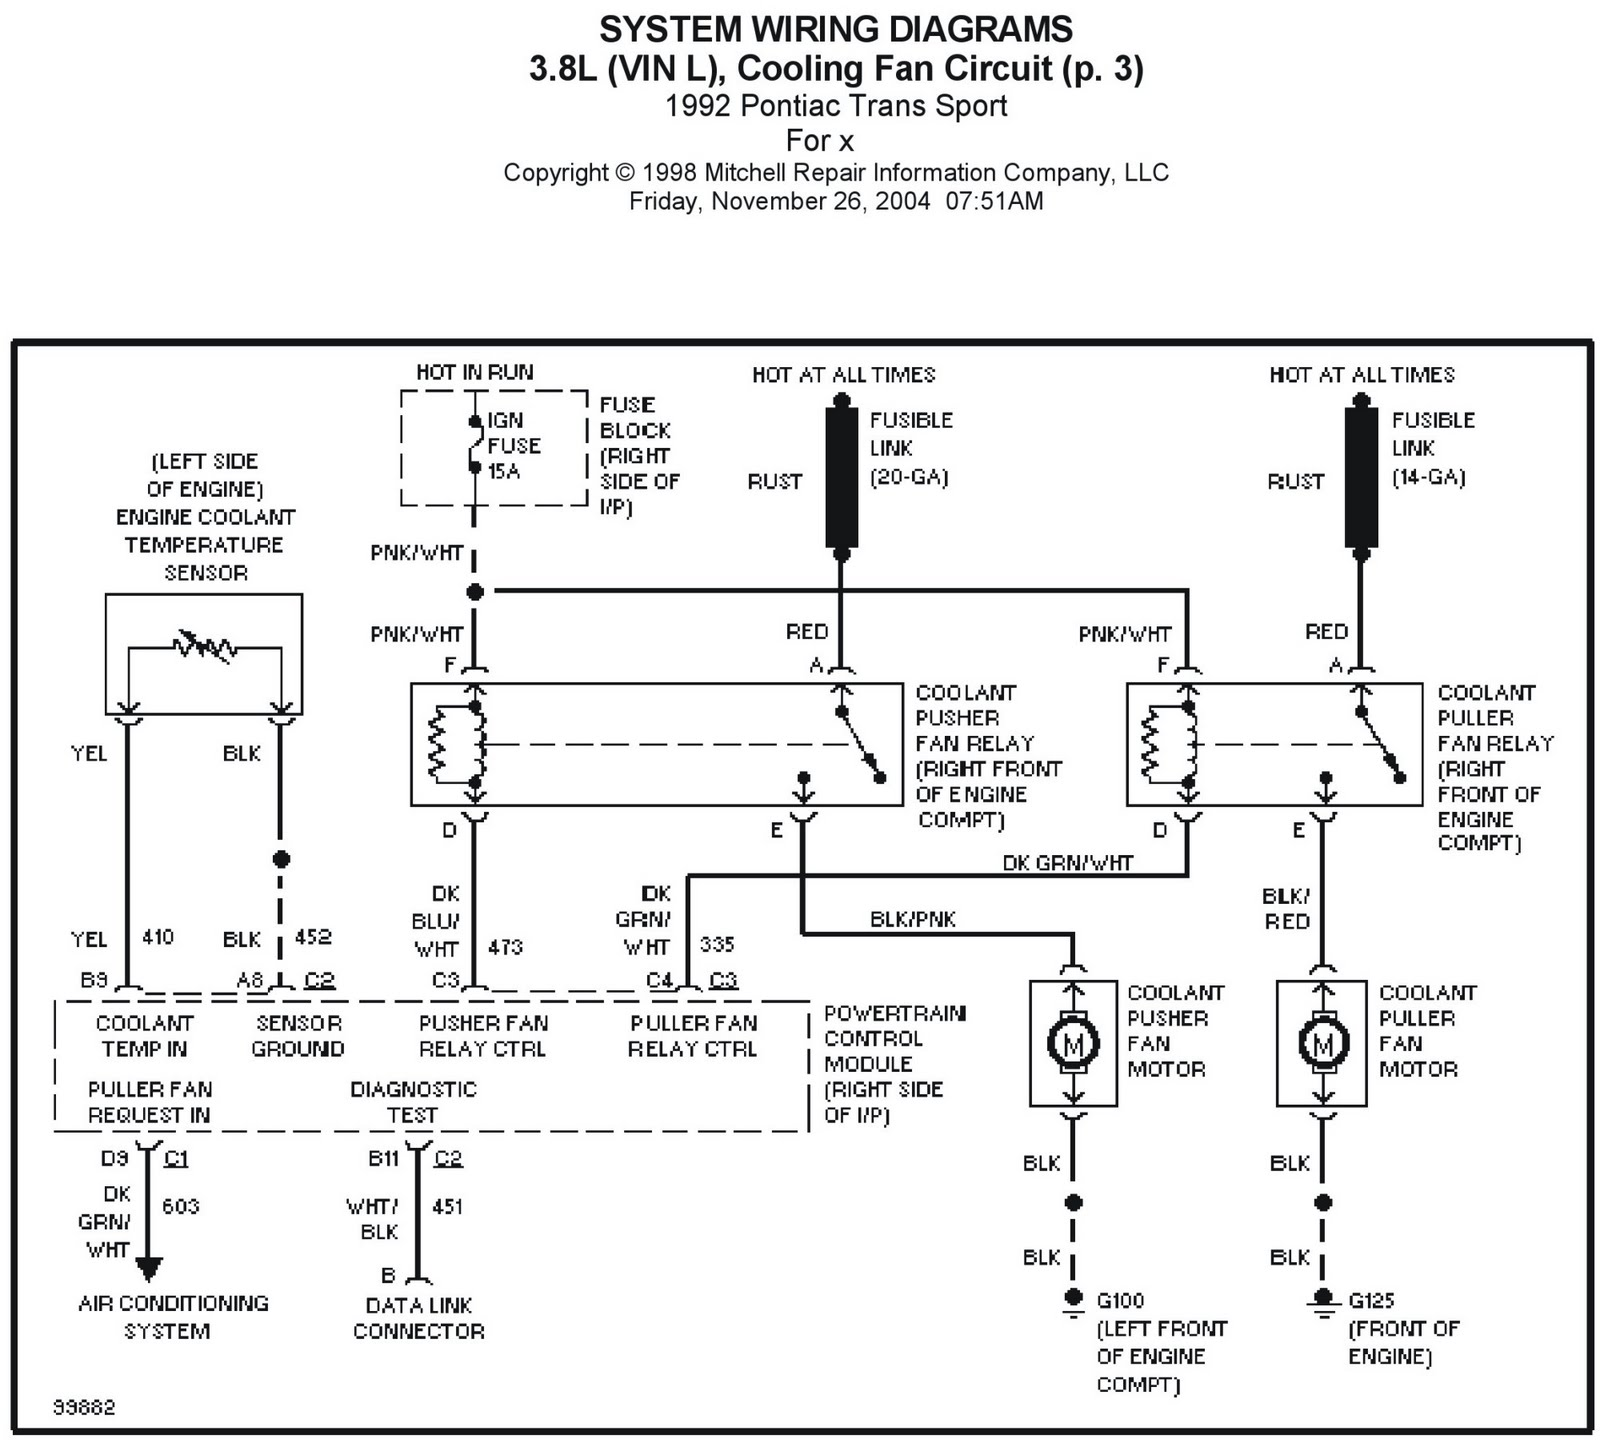 1995 trans am fuse diagram wiring diagram data